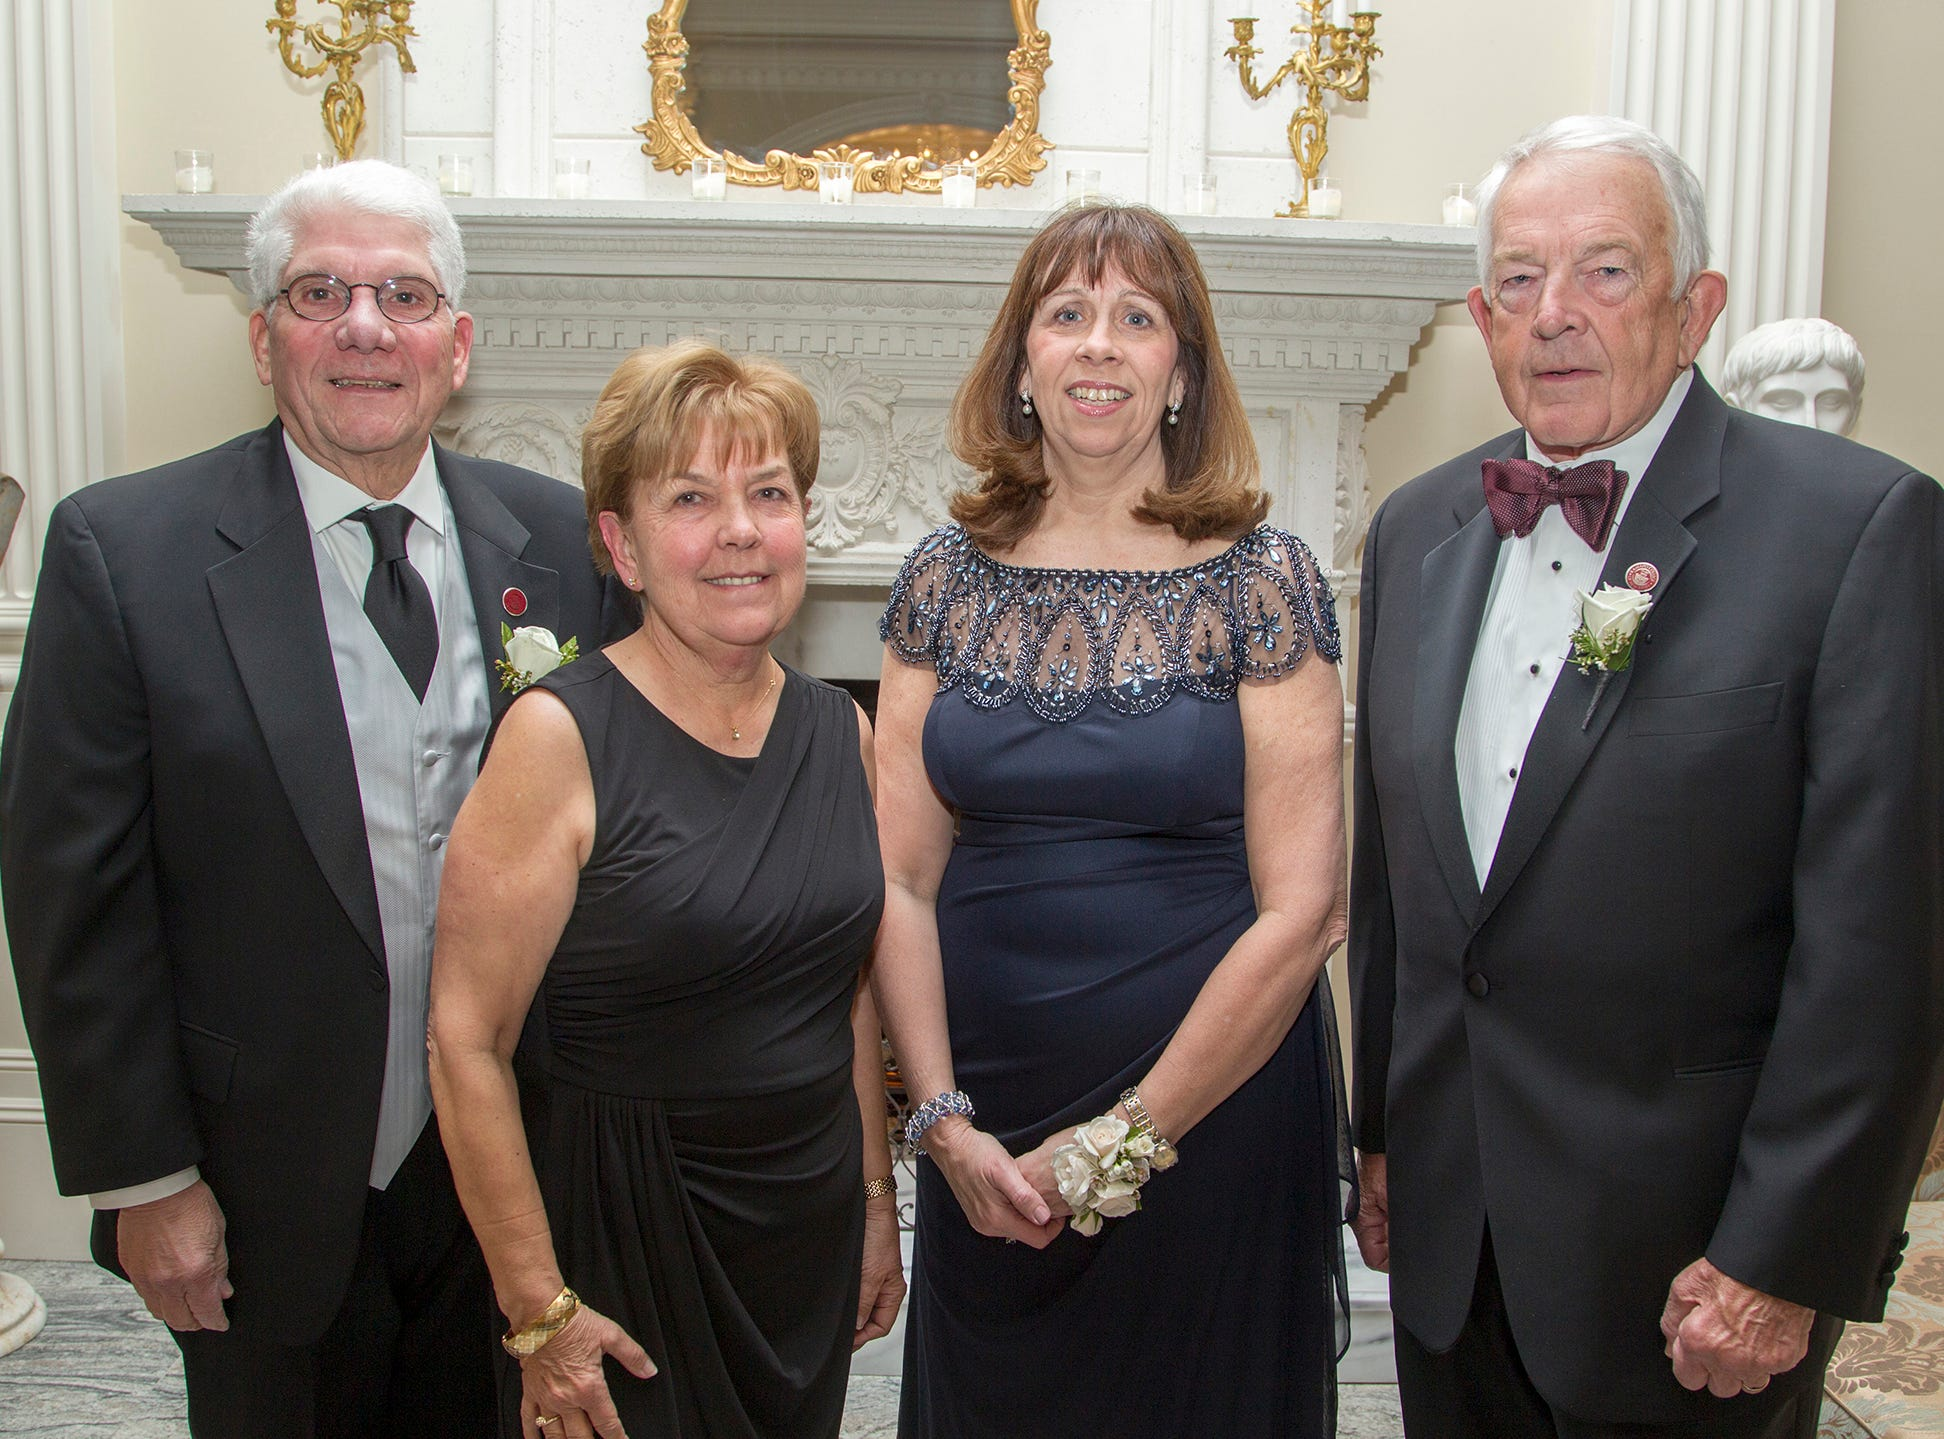 Ralph and Liz Mastrangelo, Cathleen Davey, William F. Dator. Ramapo College held its 37th Annual Distinguished Citizens Dinner at Rockleigh Country Club. 03/02/2019